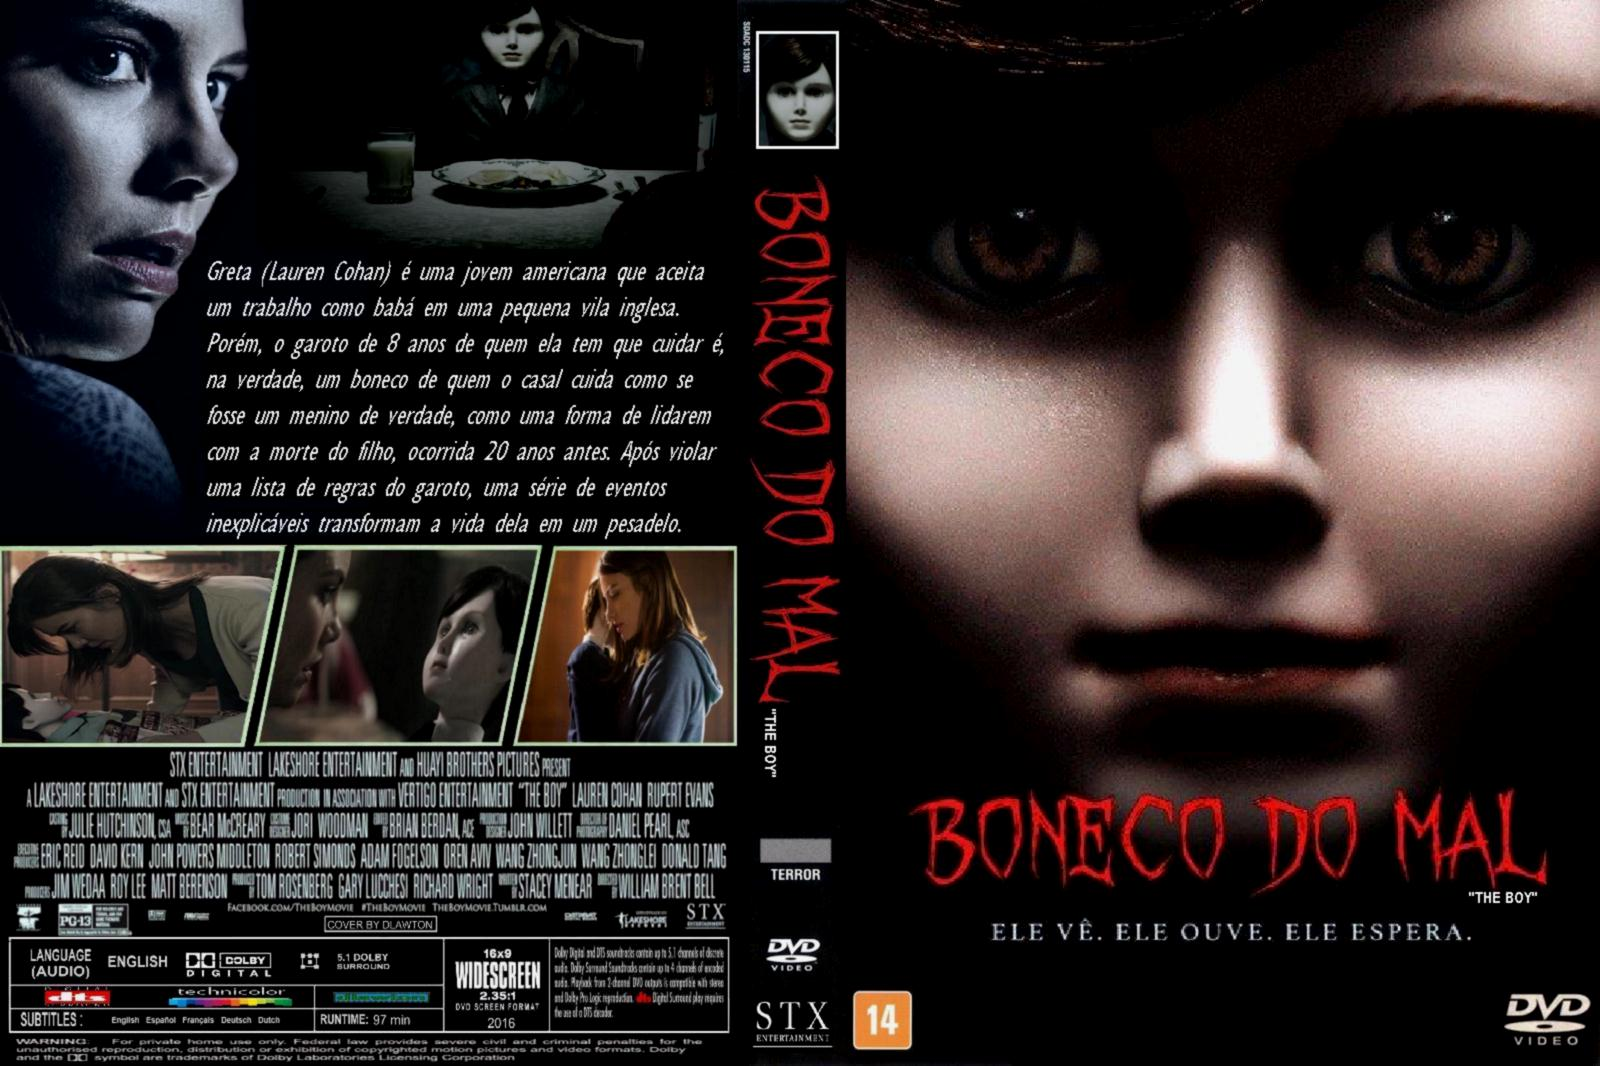 Download Boneco do Mal BDRip XviD Dual Áudio Boneco 2Bdo 2BMal